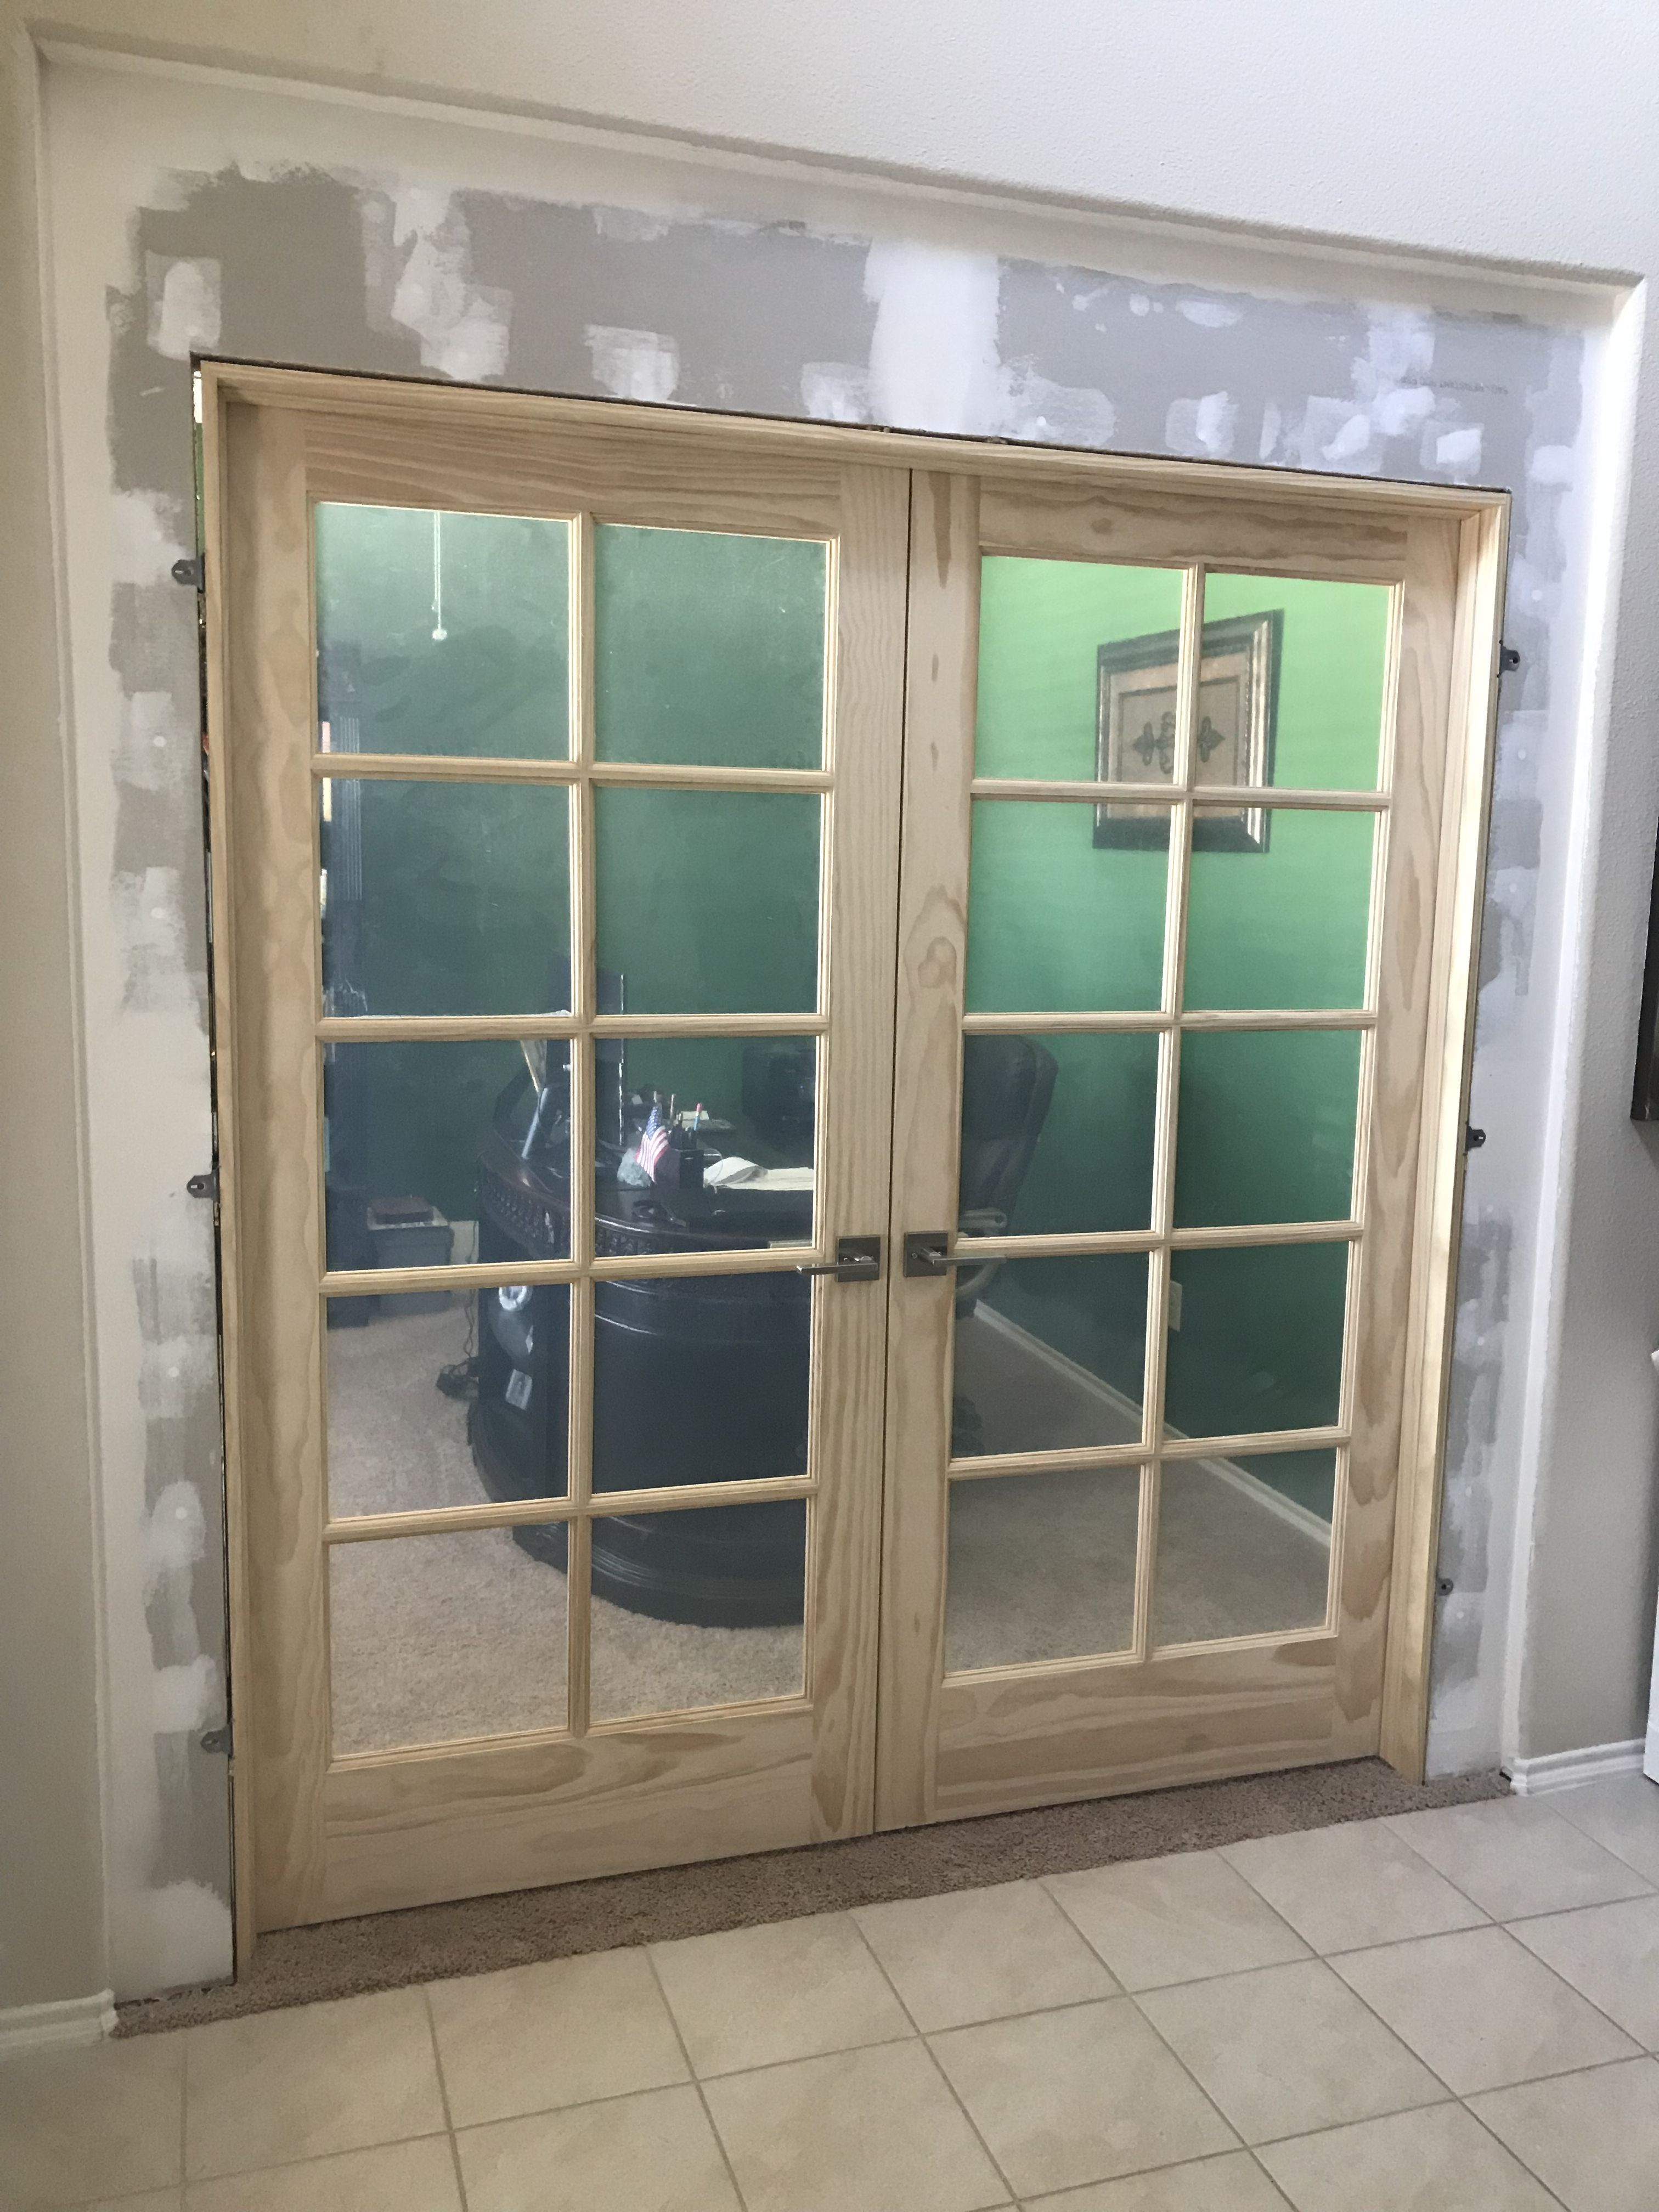 Diy Set A Double French Door  From Dining Room